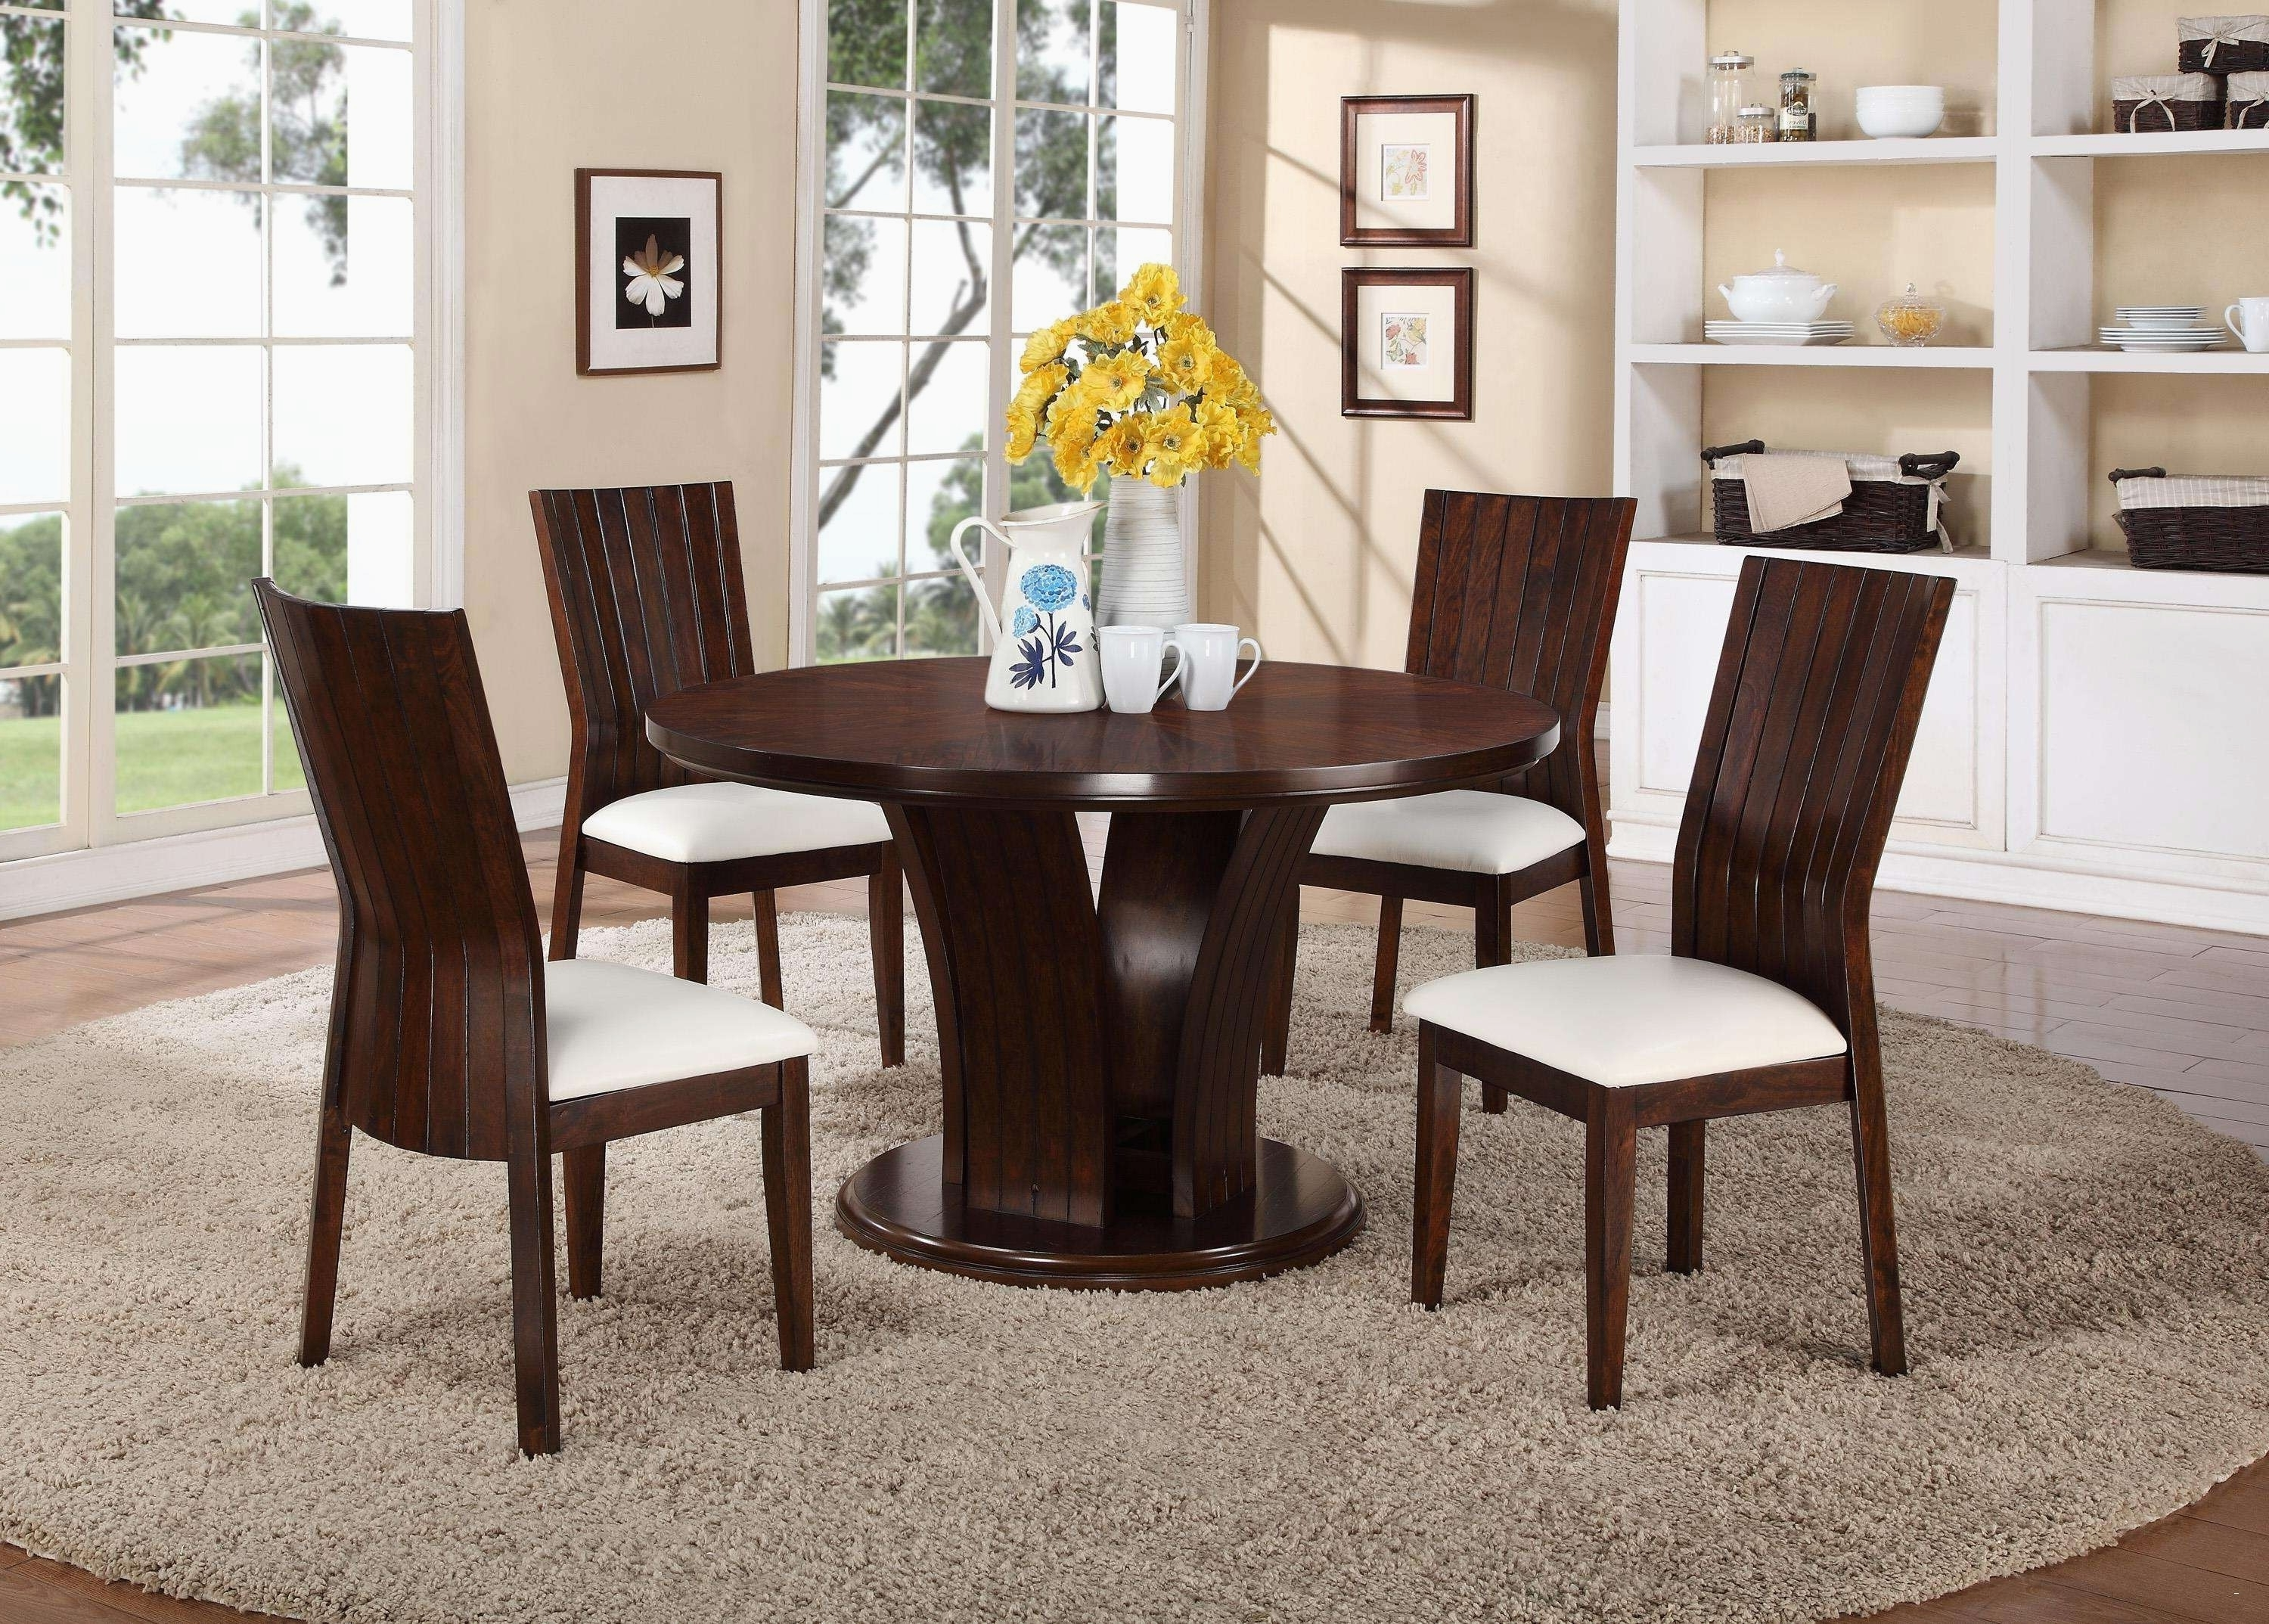 6 Person Round Dining Tables throughout Newest Terrific 8 Person Kitchen Table In 6 Seat Round Dining Table Classy